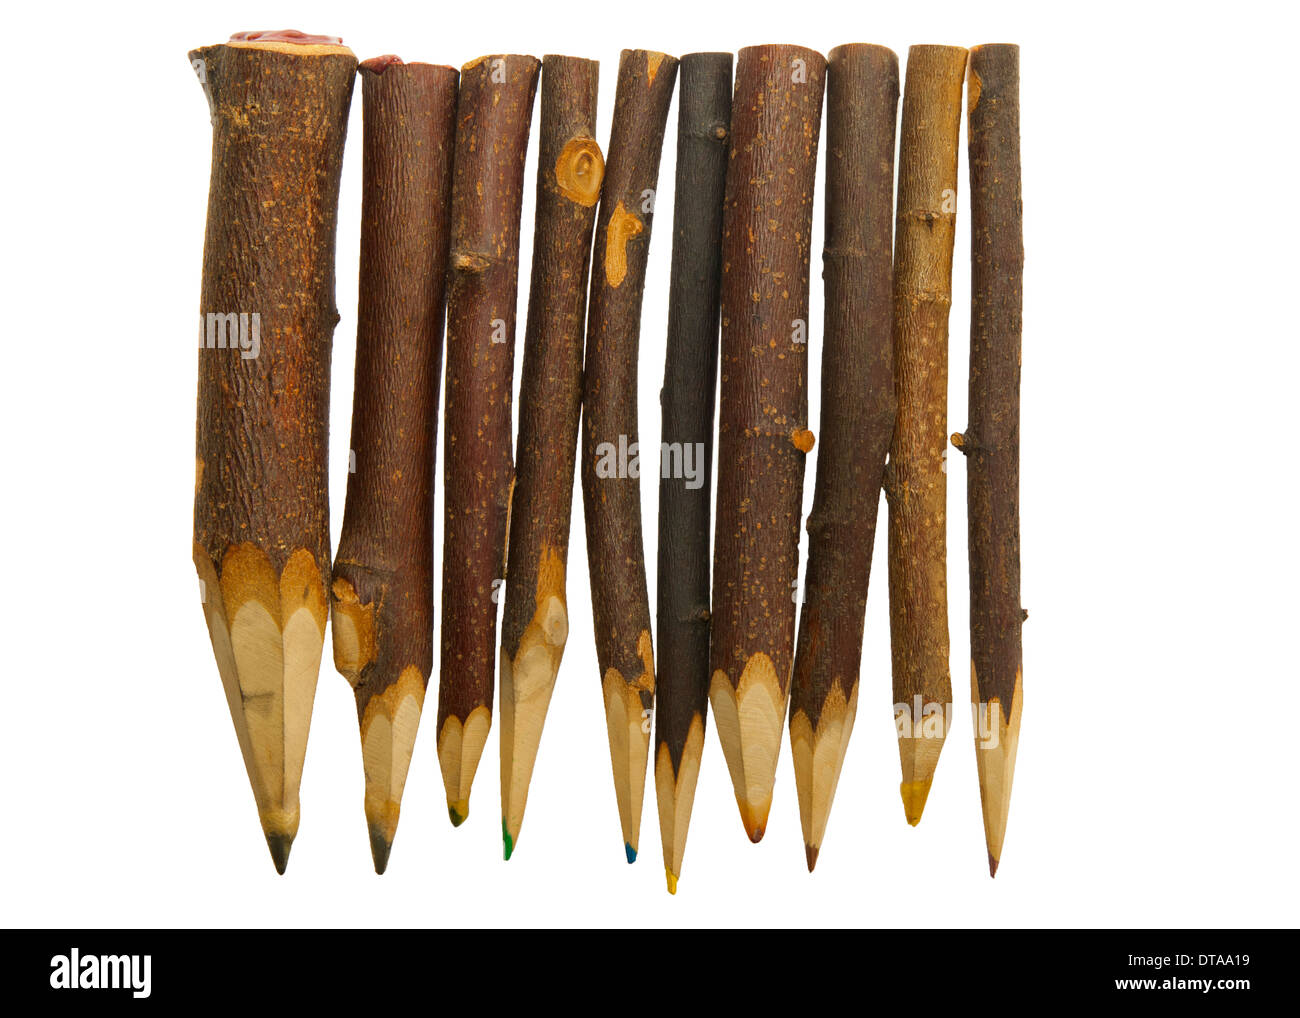 Unique sharp wooden Pencils isolated on white - Stock Image